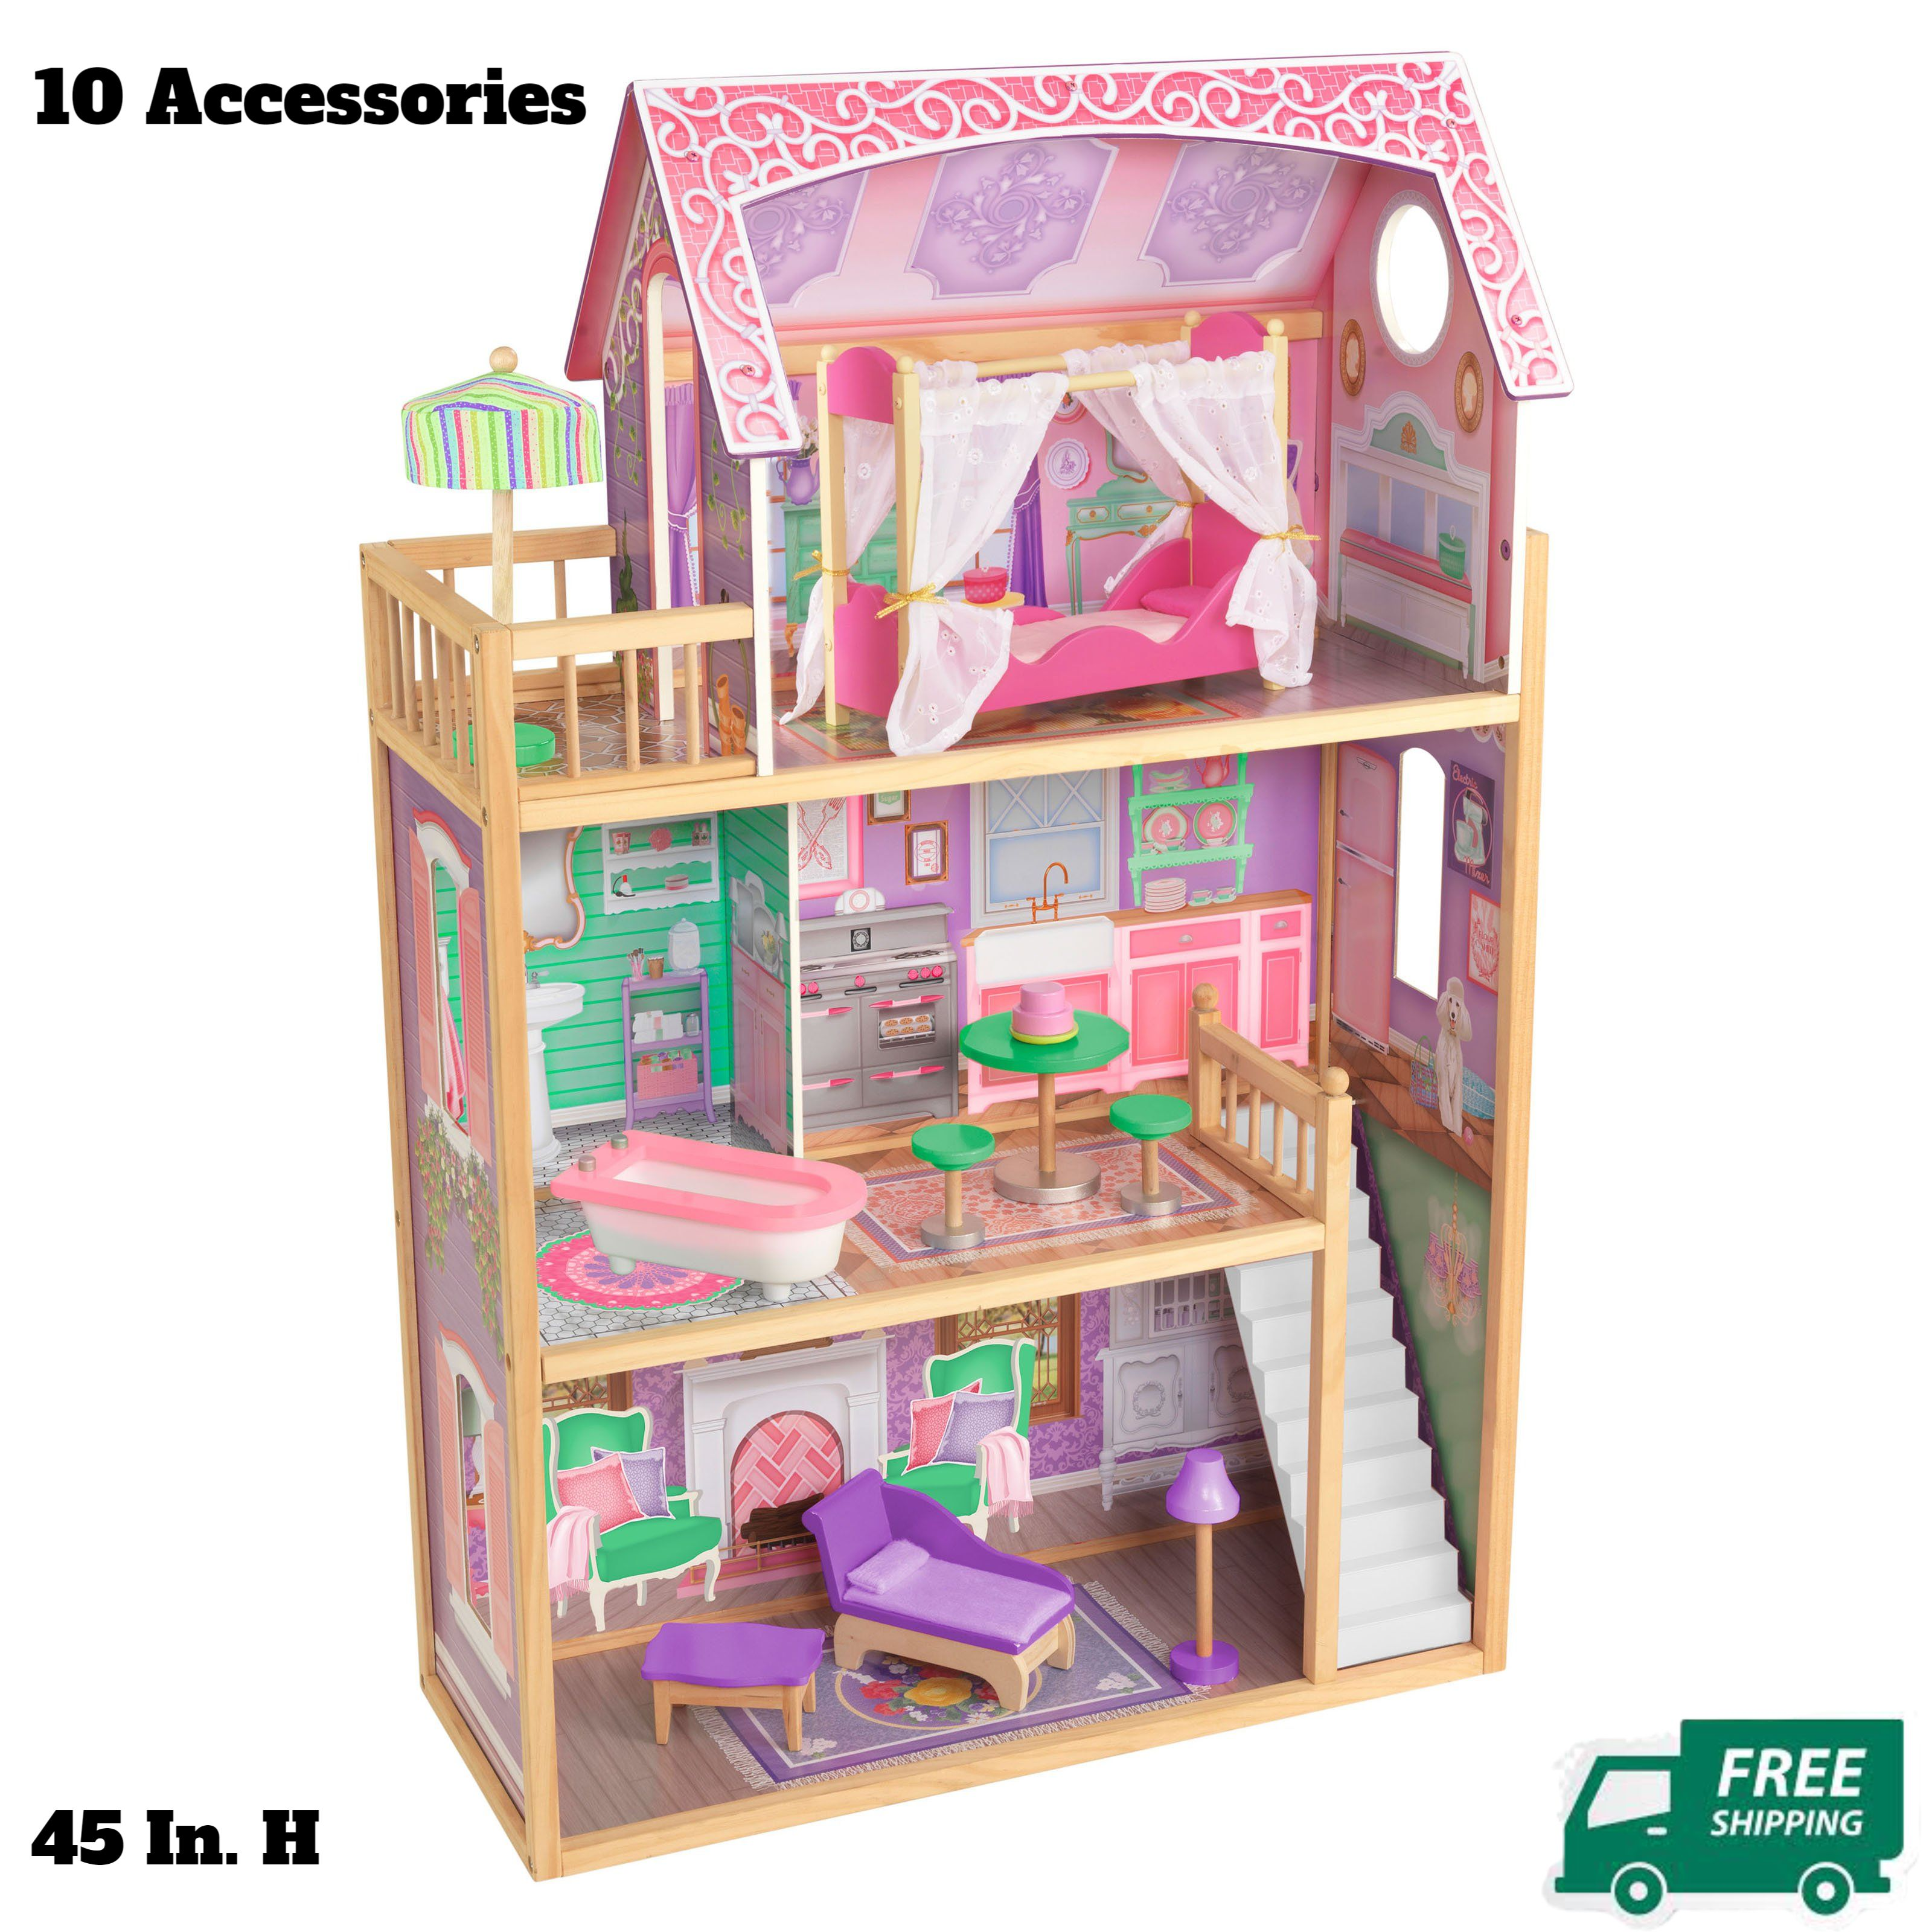 Doll House Girls Playhouse Barbie Toys Wooden Furniture 3 Levels 10 Accessories